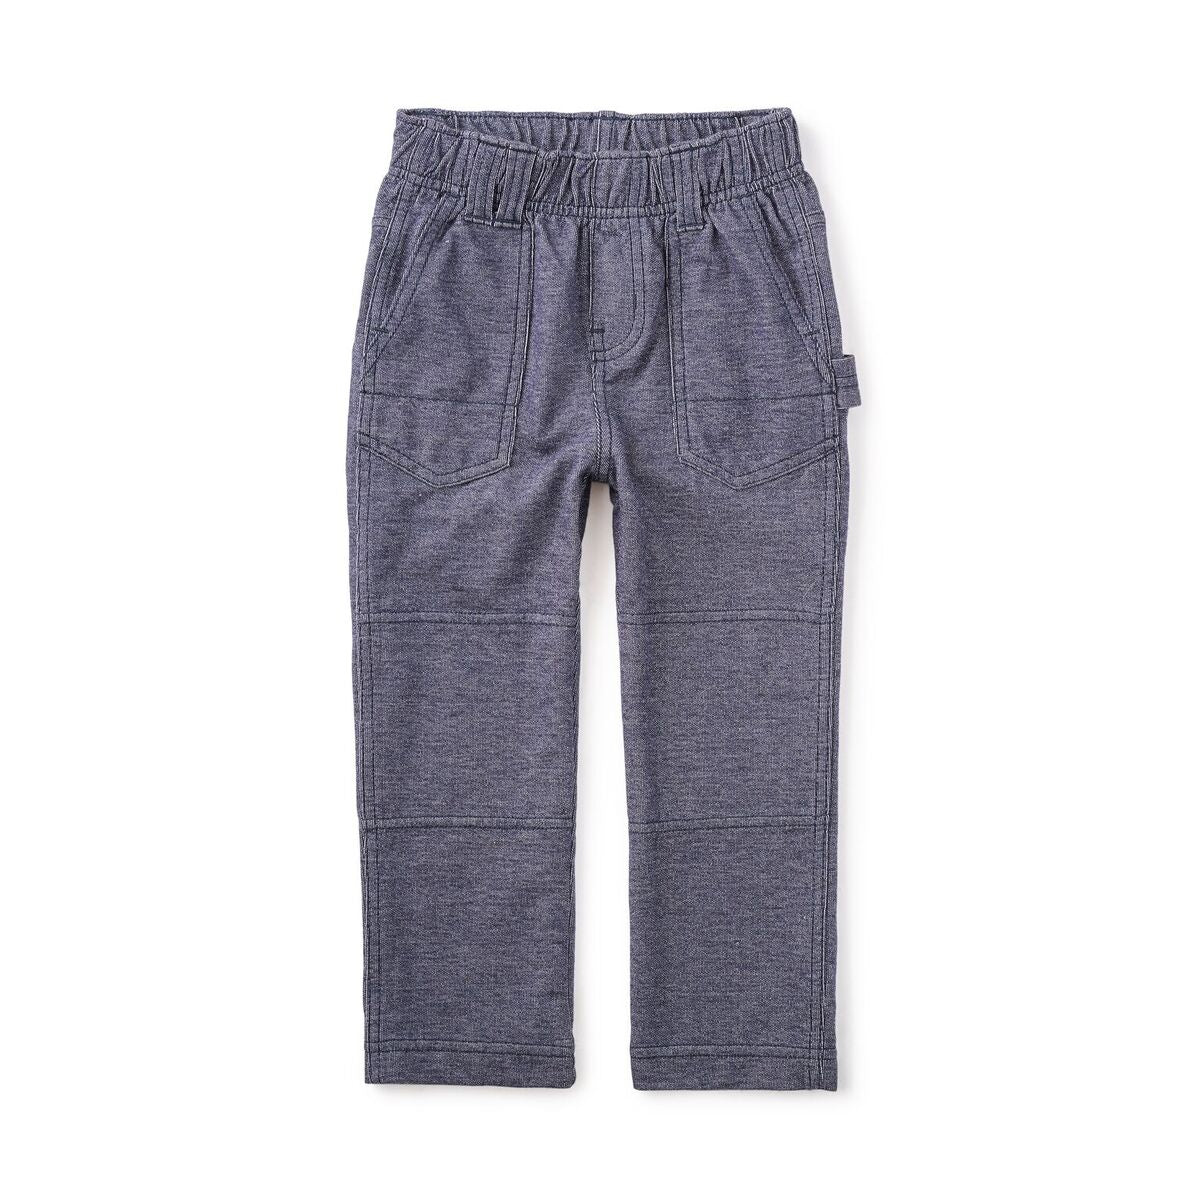 Denim-Like Playwear Pants